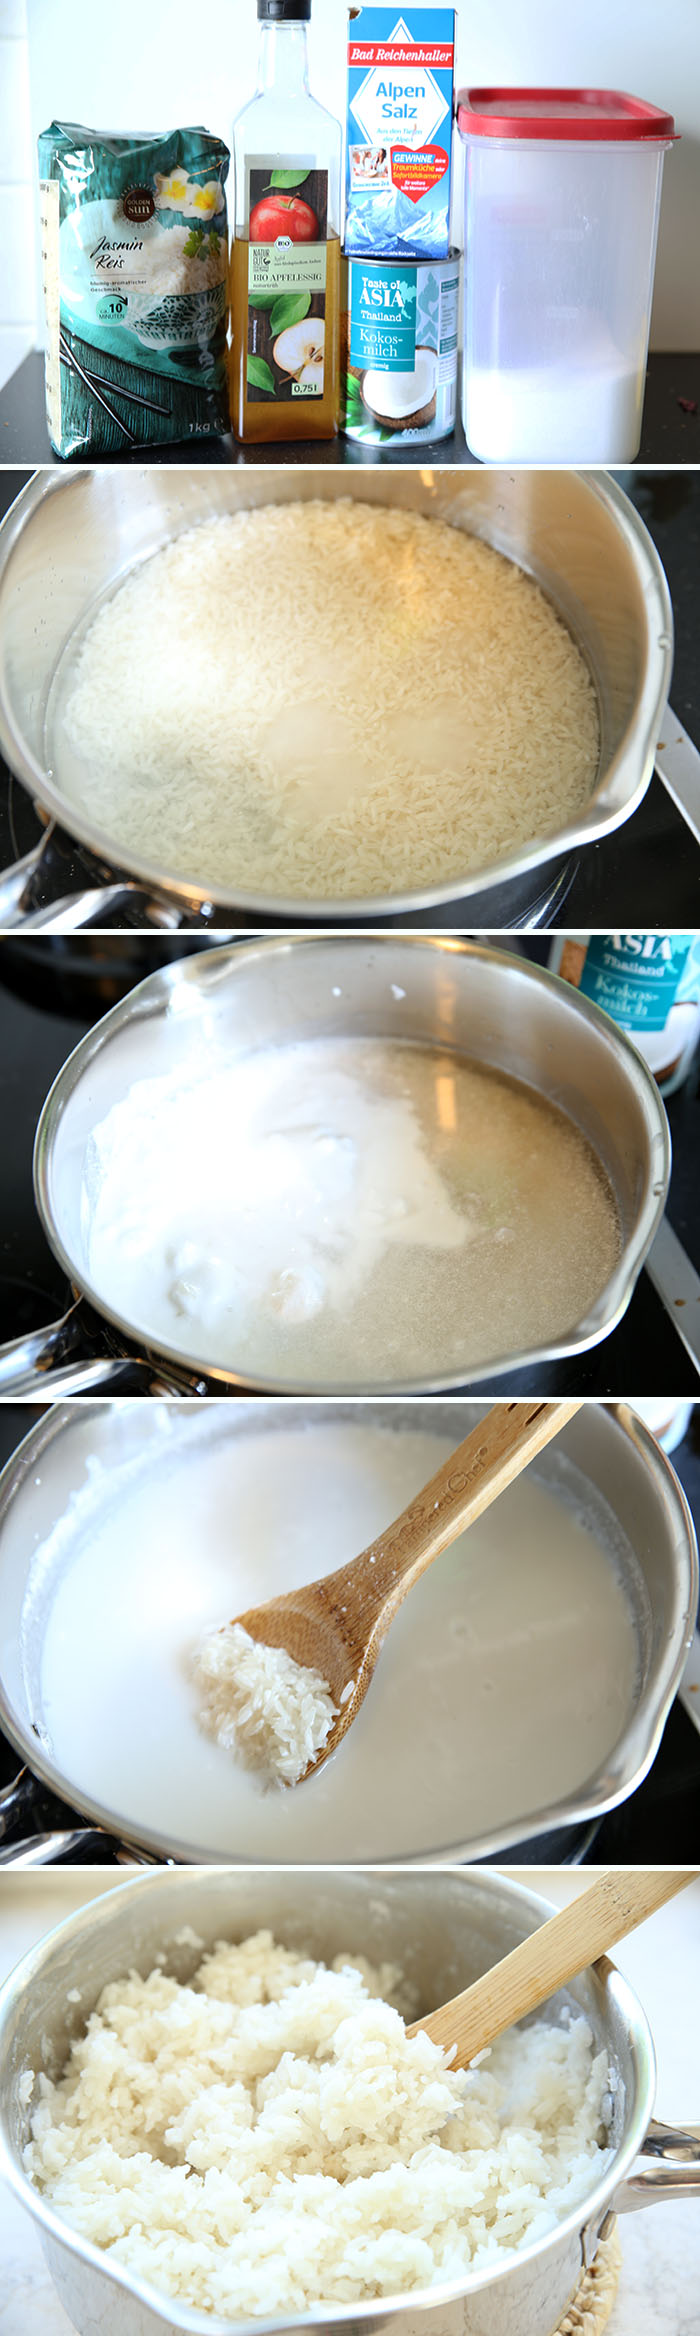 step by step picture collage showing how to make coconut rice